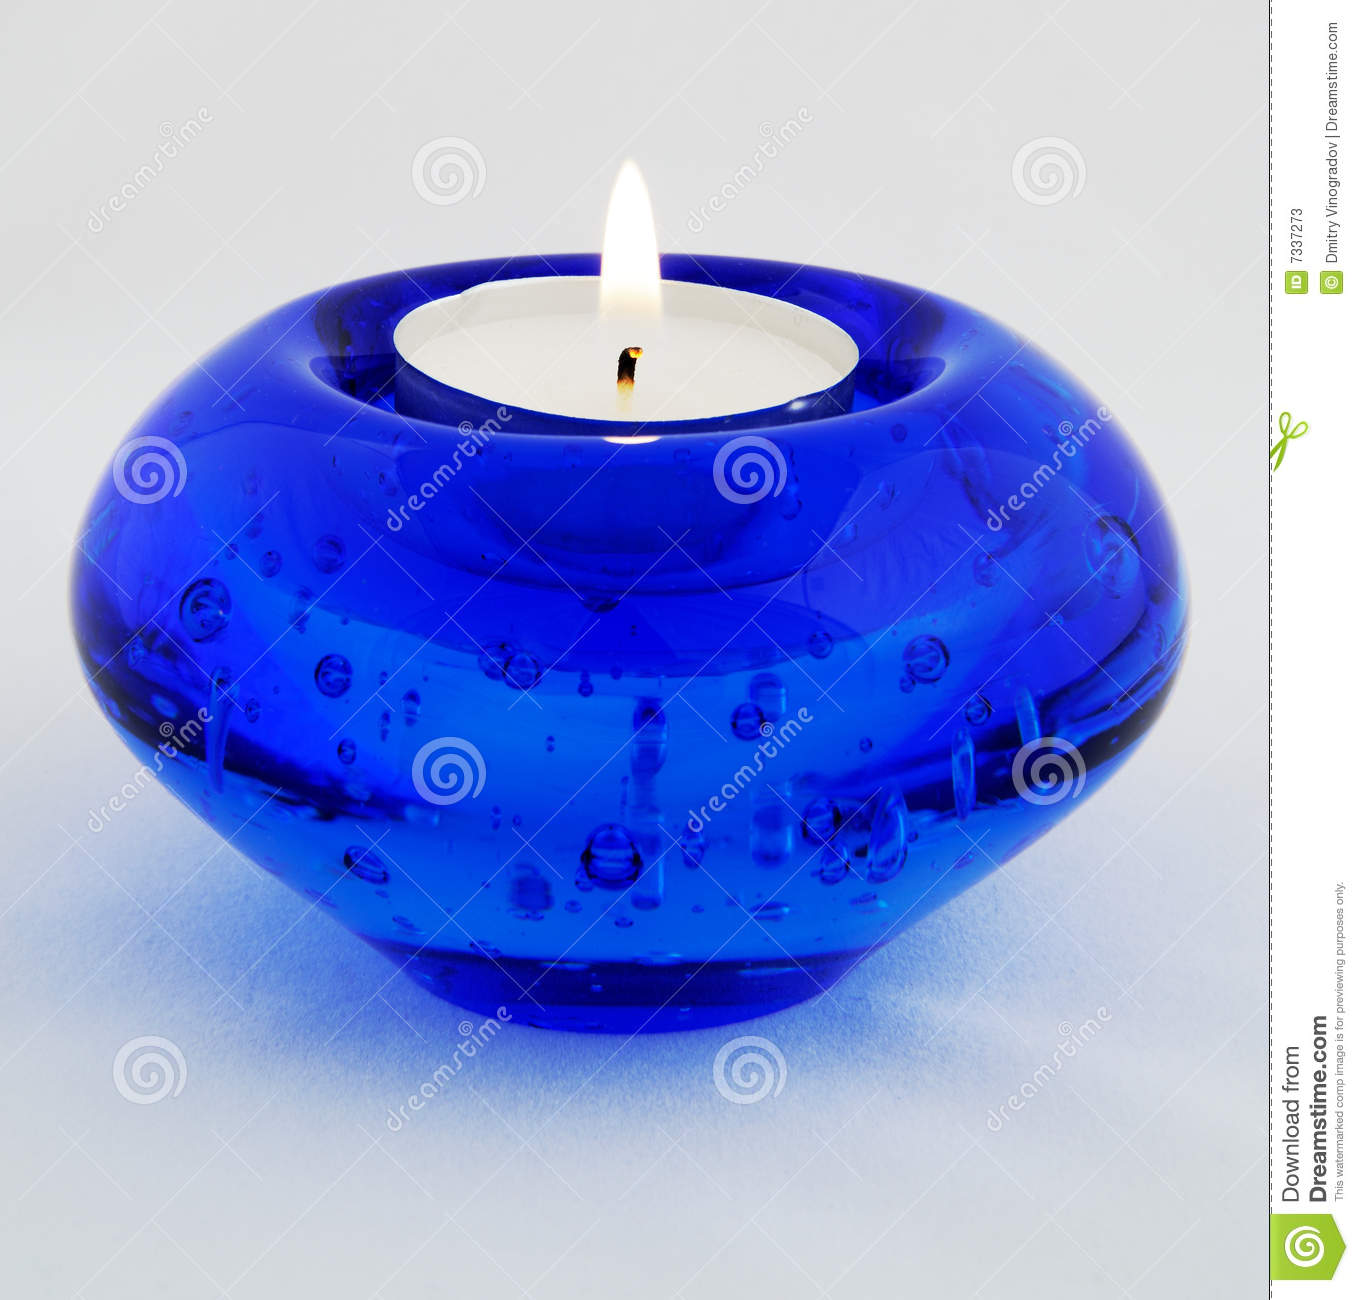 Blue candle stock image. Image of reflection, still, white - 7337273 for Blue Candle White Background  103wja